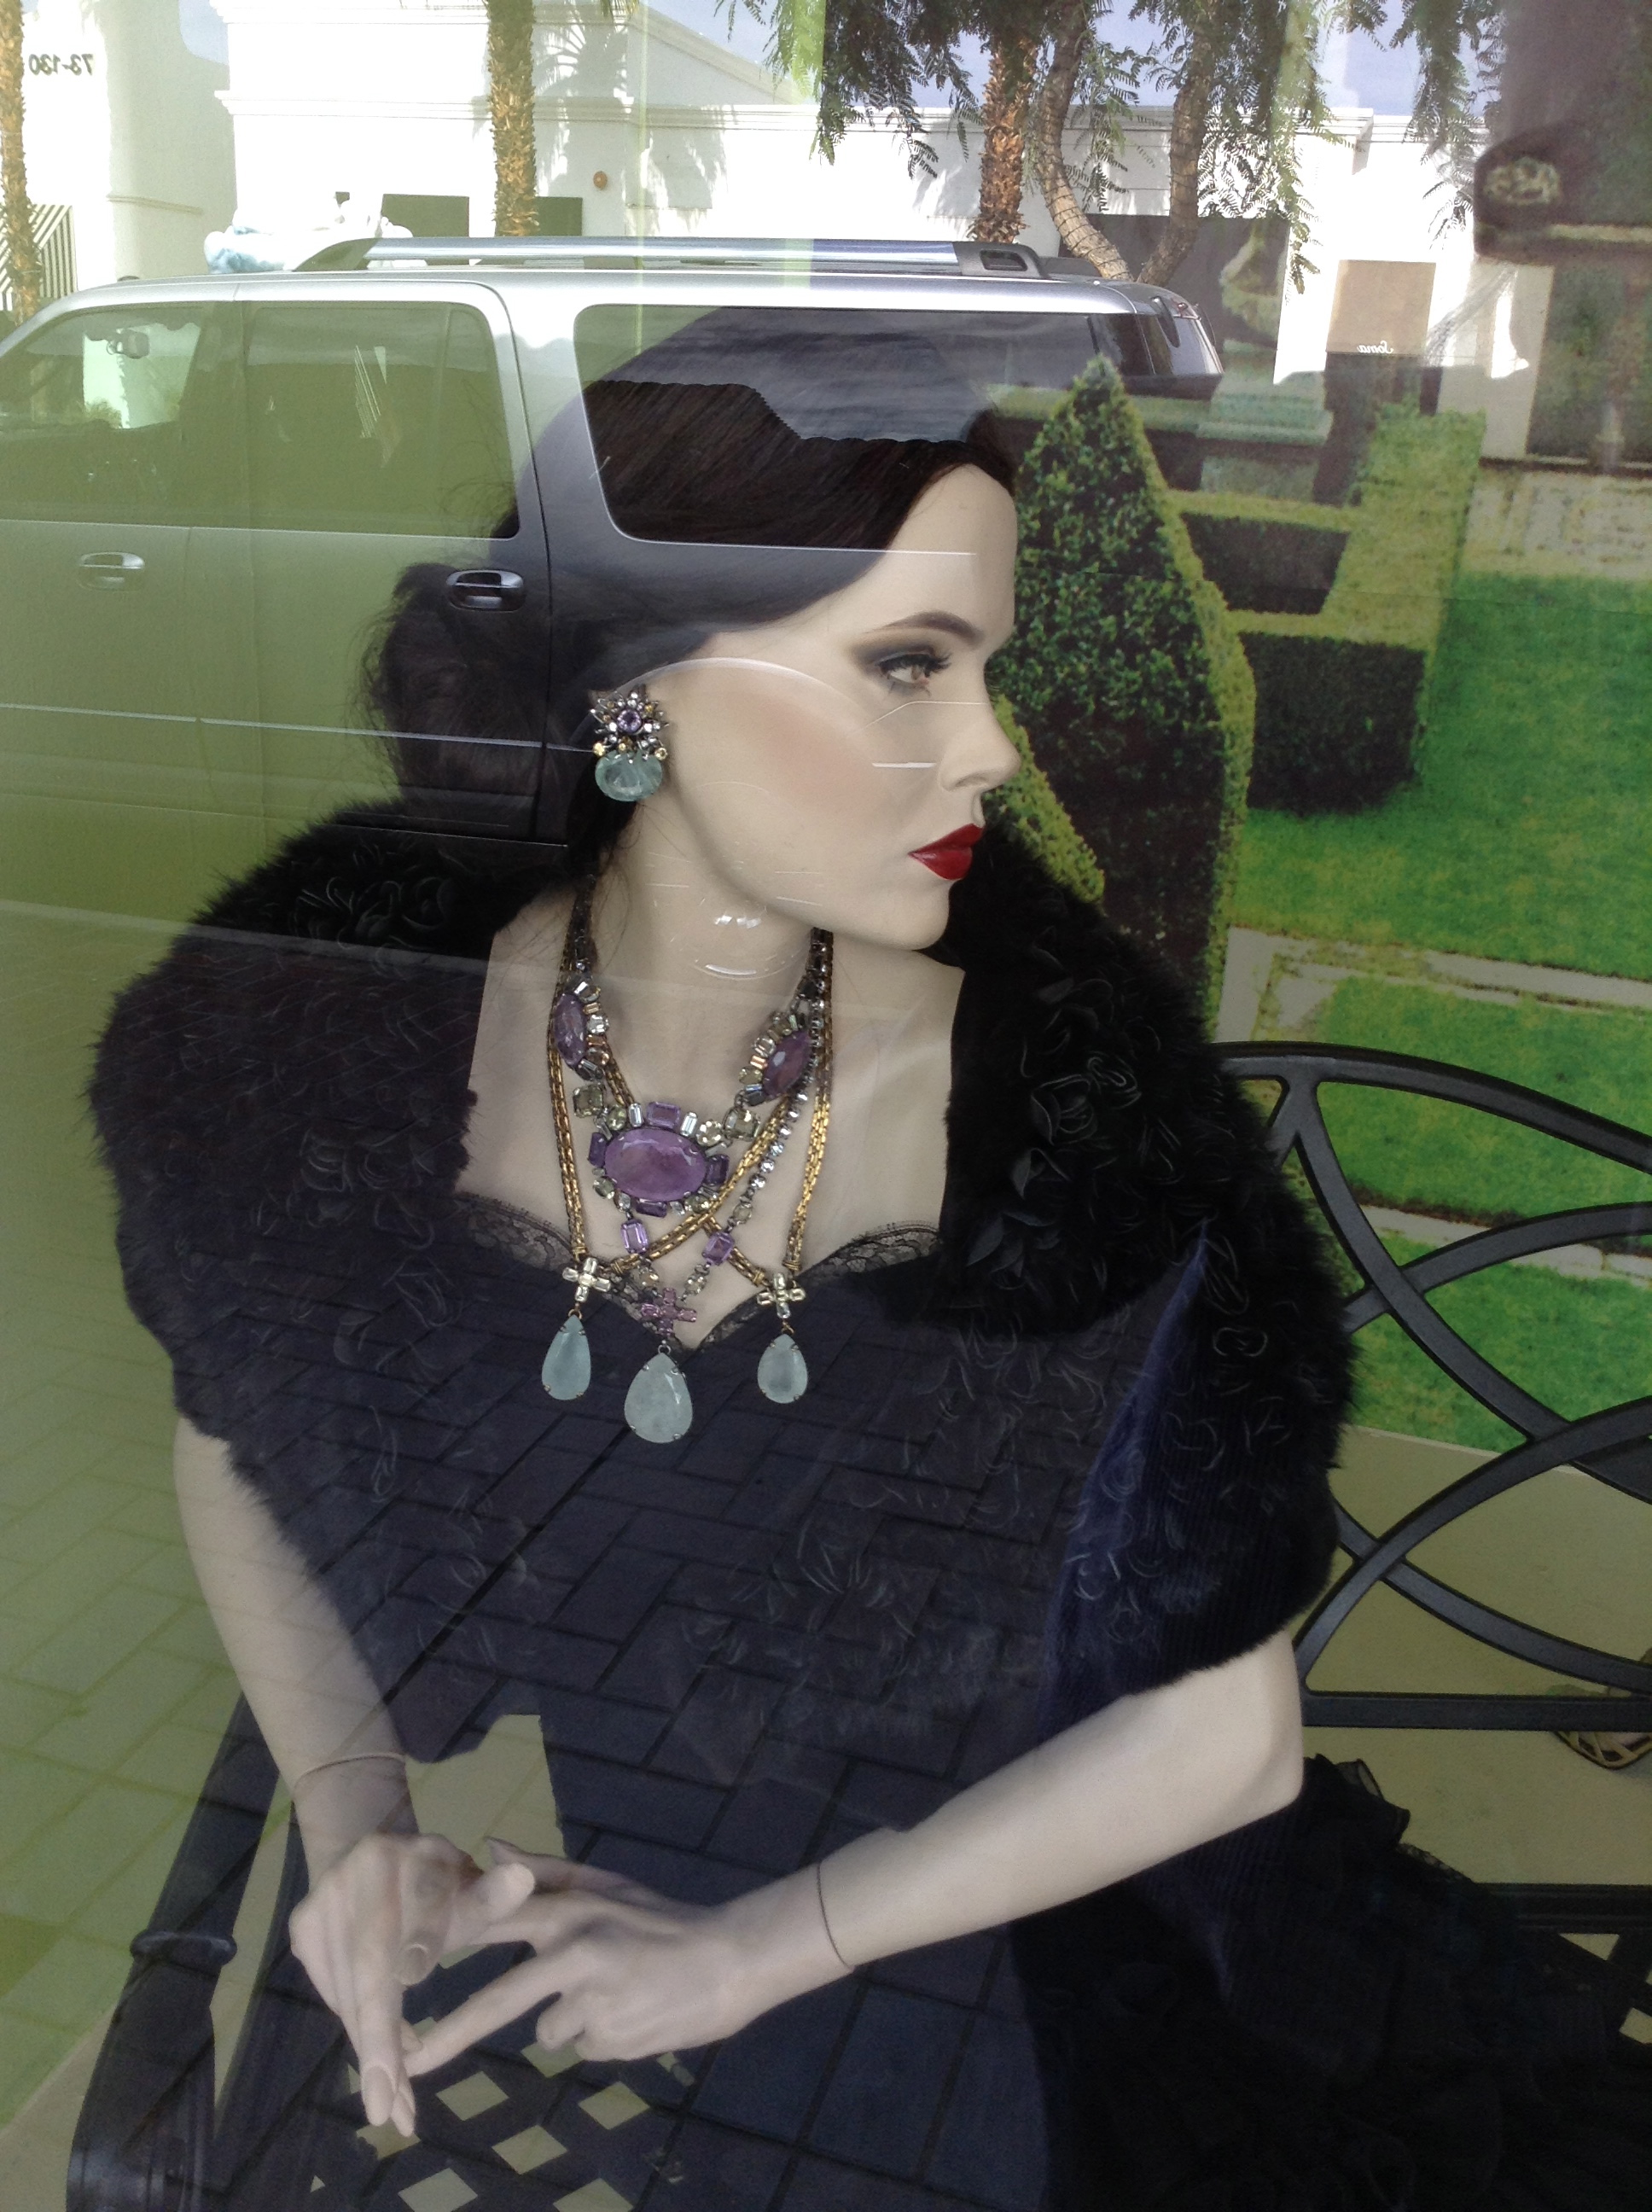 Fabulous fashion and jewels on an elegant mannequin at Fe Zandi Haute Couture on El Paseo Drive in Palm Desert.